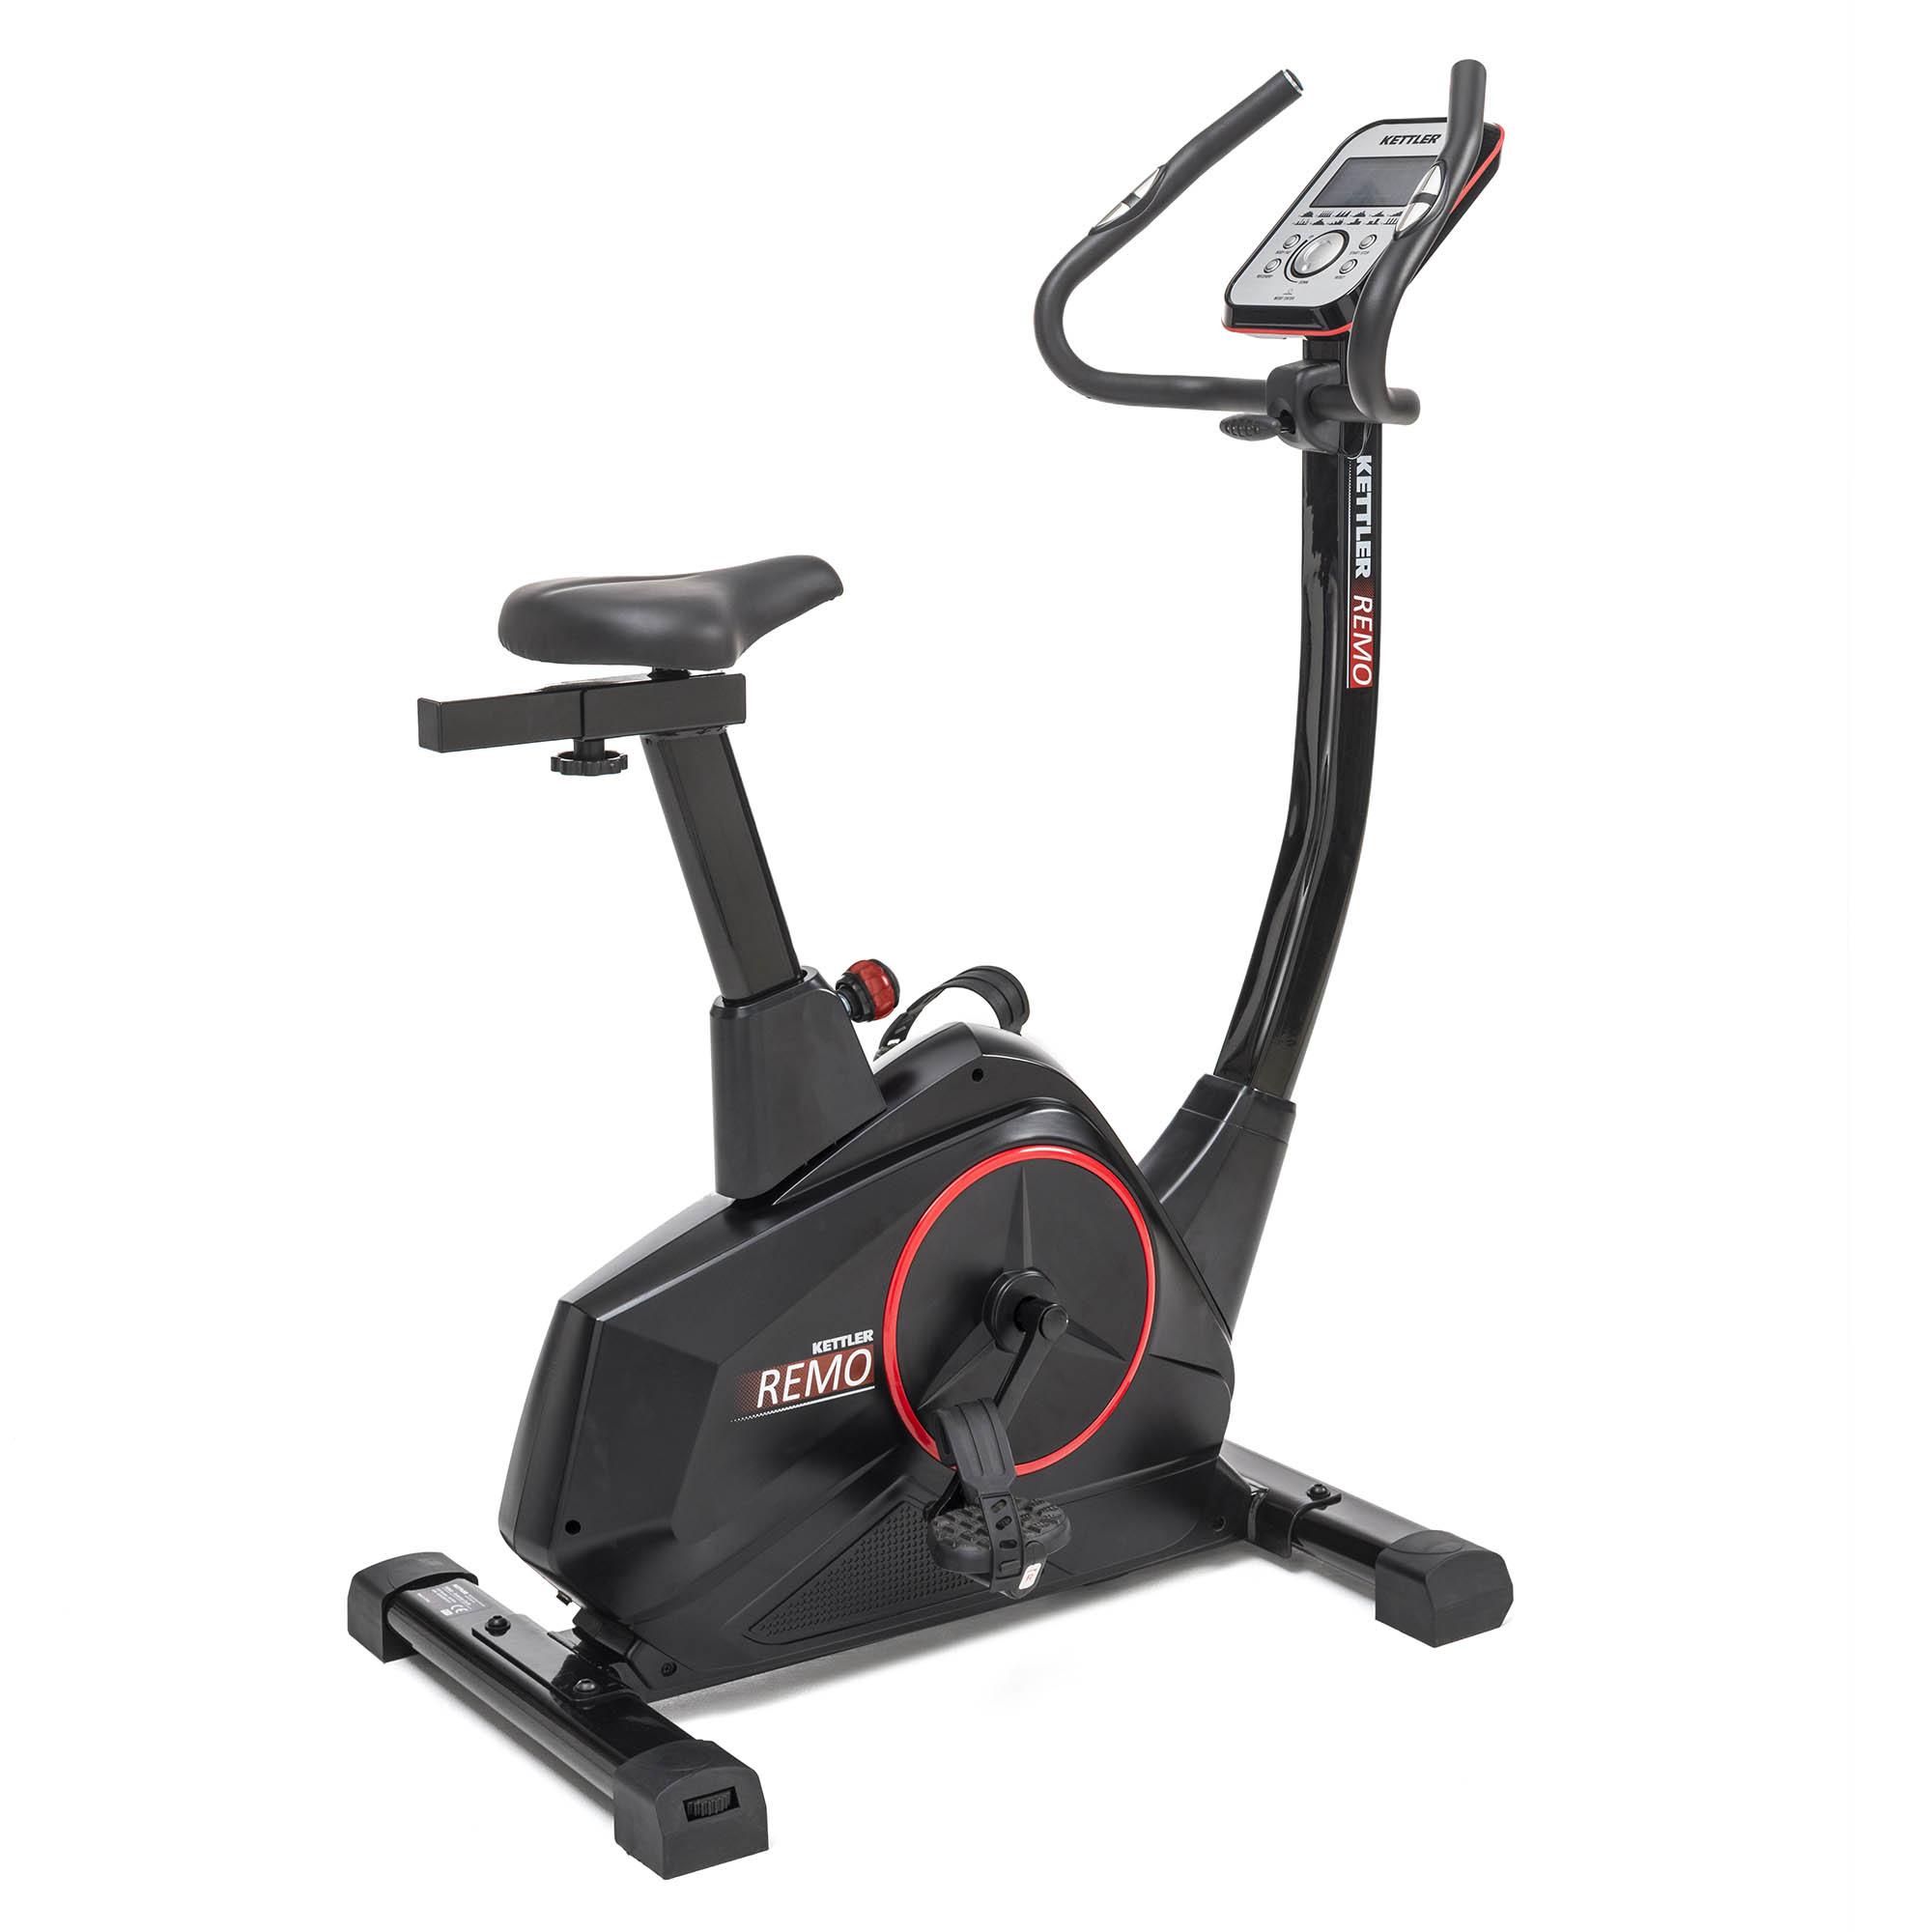 Kettler Remo Exercise Bike